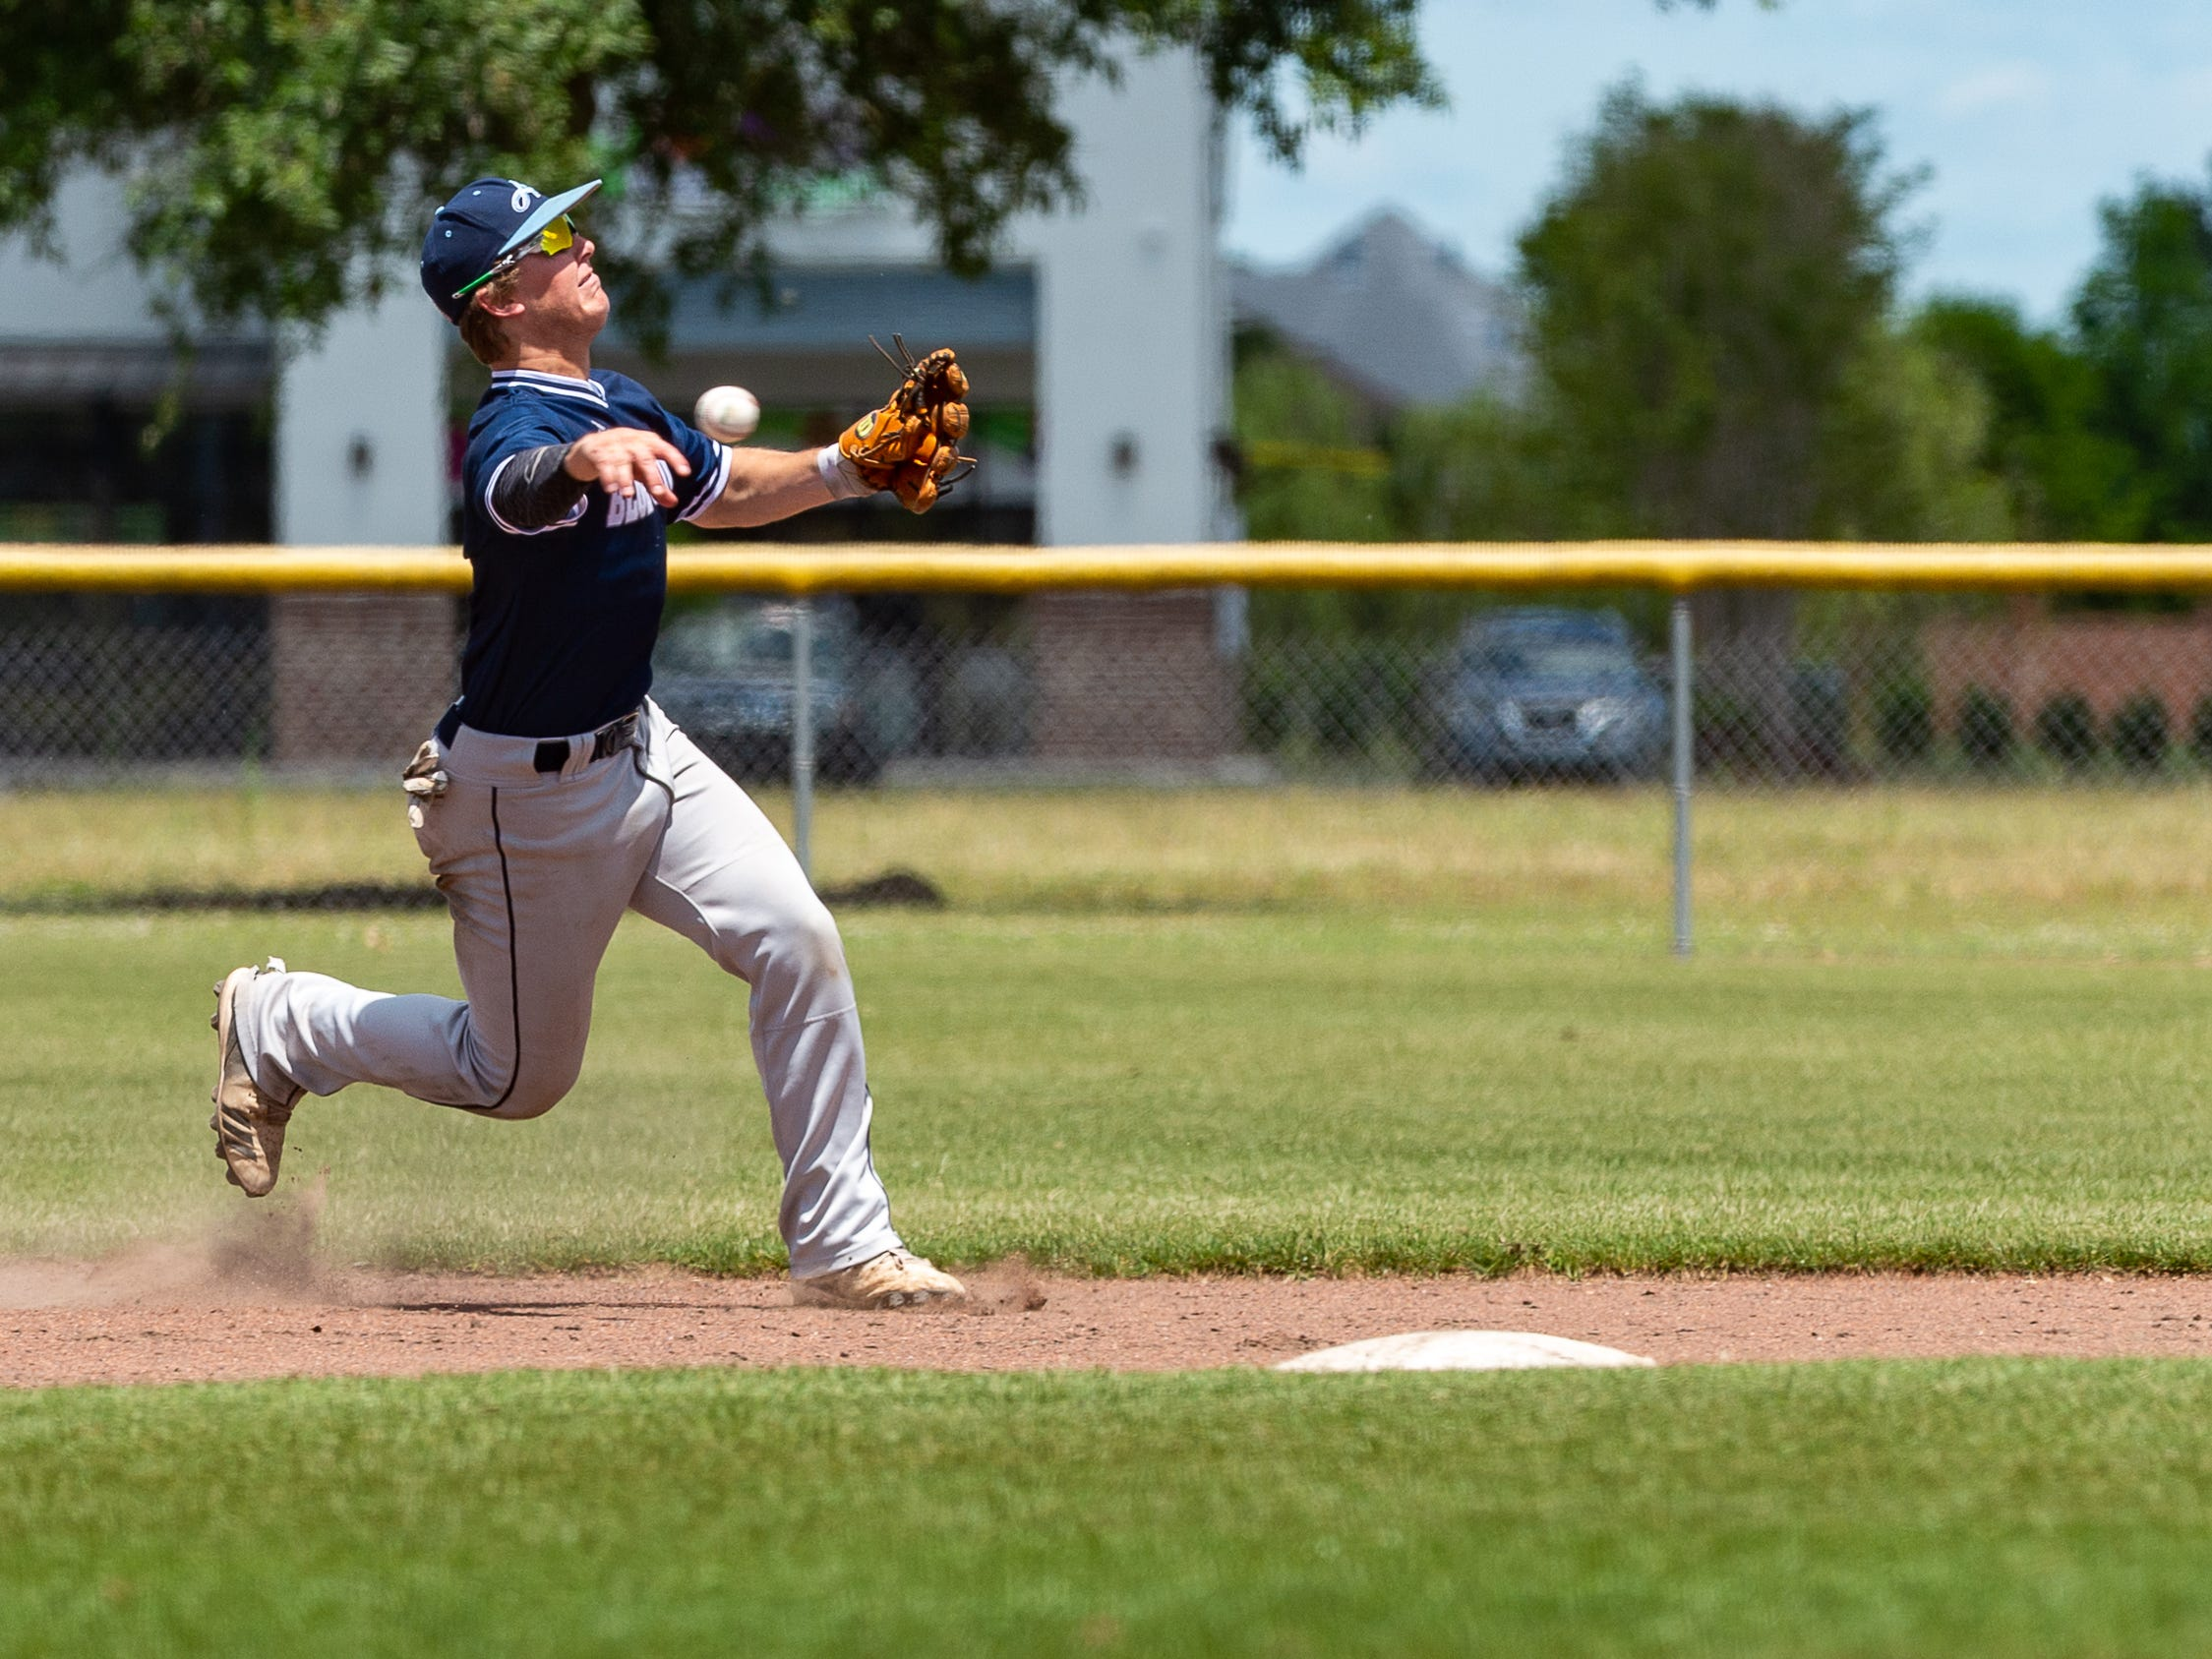 Will Kerstetter throws down to first as the Ascension Blue Gators take on Holy Savior Menard in game two of the semi final round of the LHSAA playoffs. Sunday, May 5, 2019.